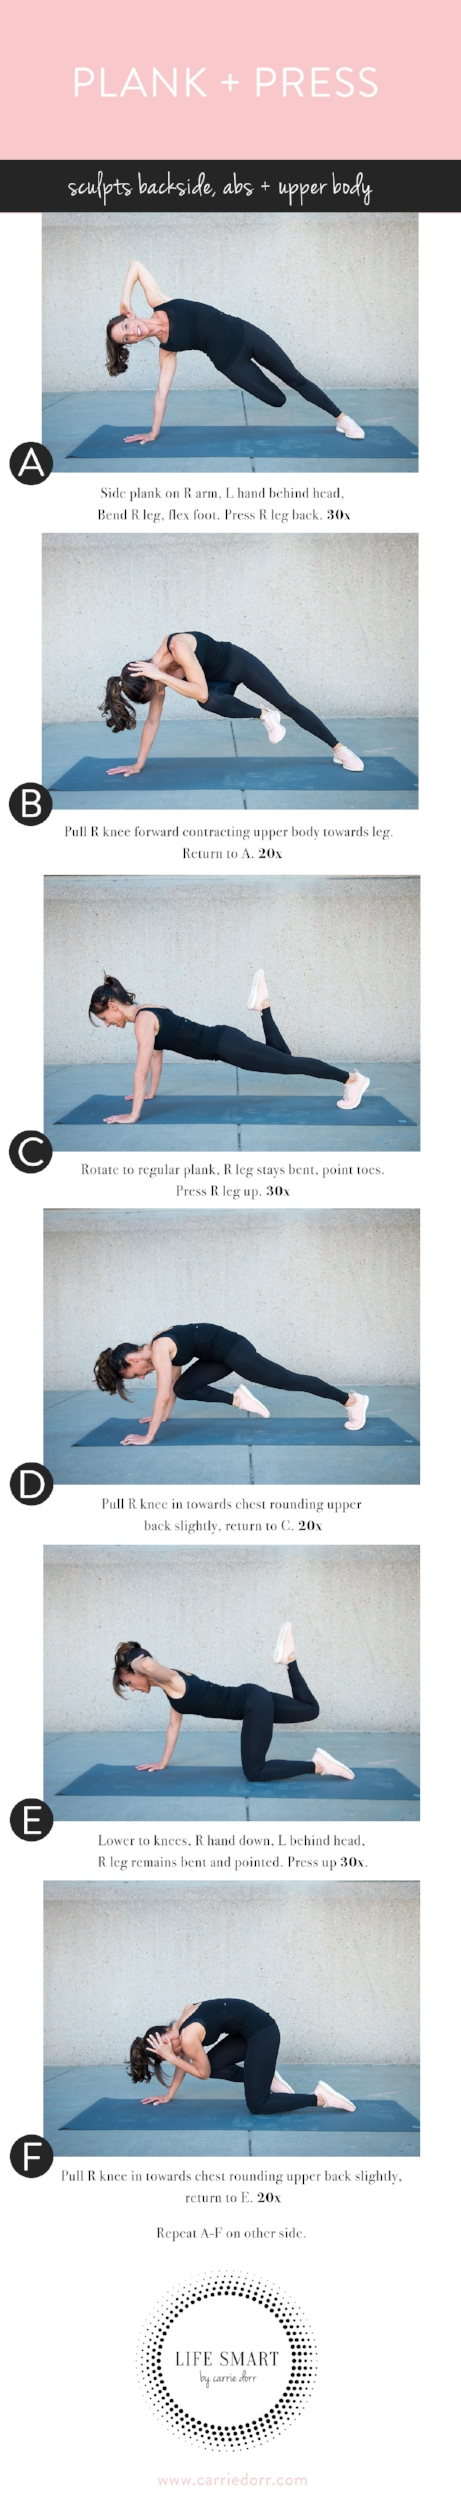 Plank + Press — LIFE SMART by Carrie Dorr